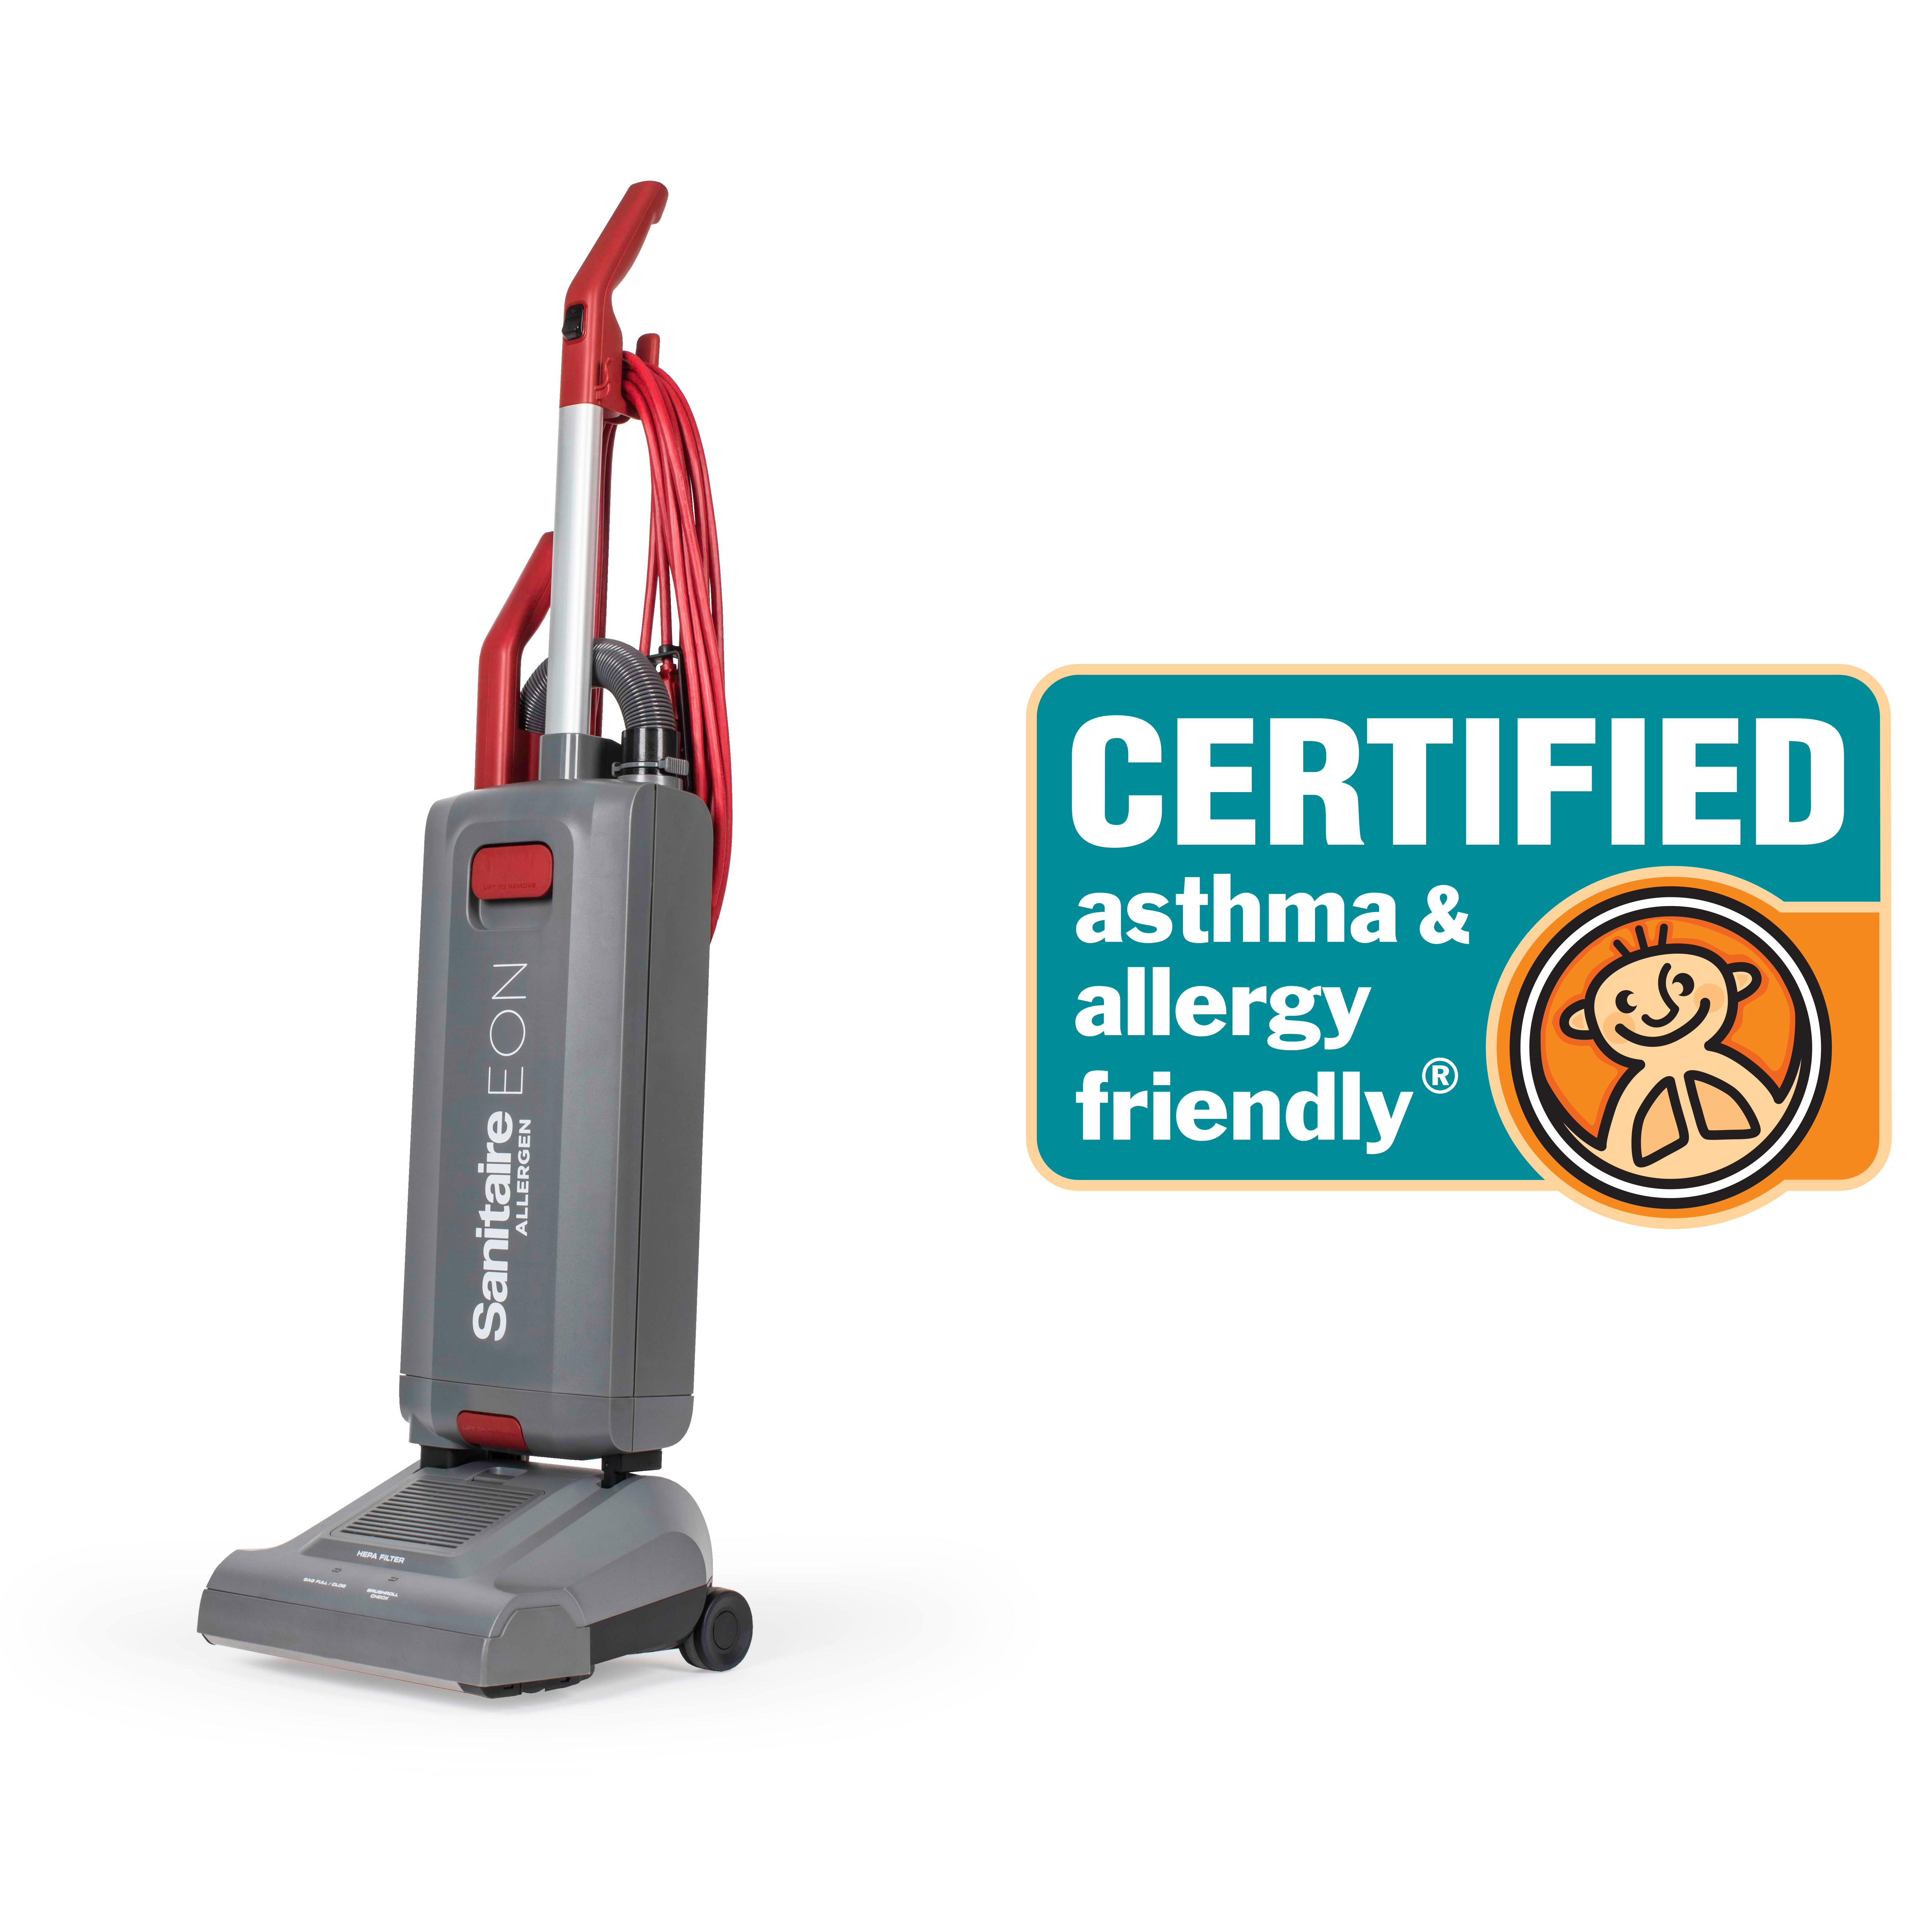 Sanitaire vacuum cleaner passed ASL scientific standards